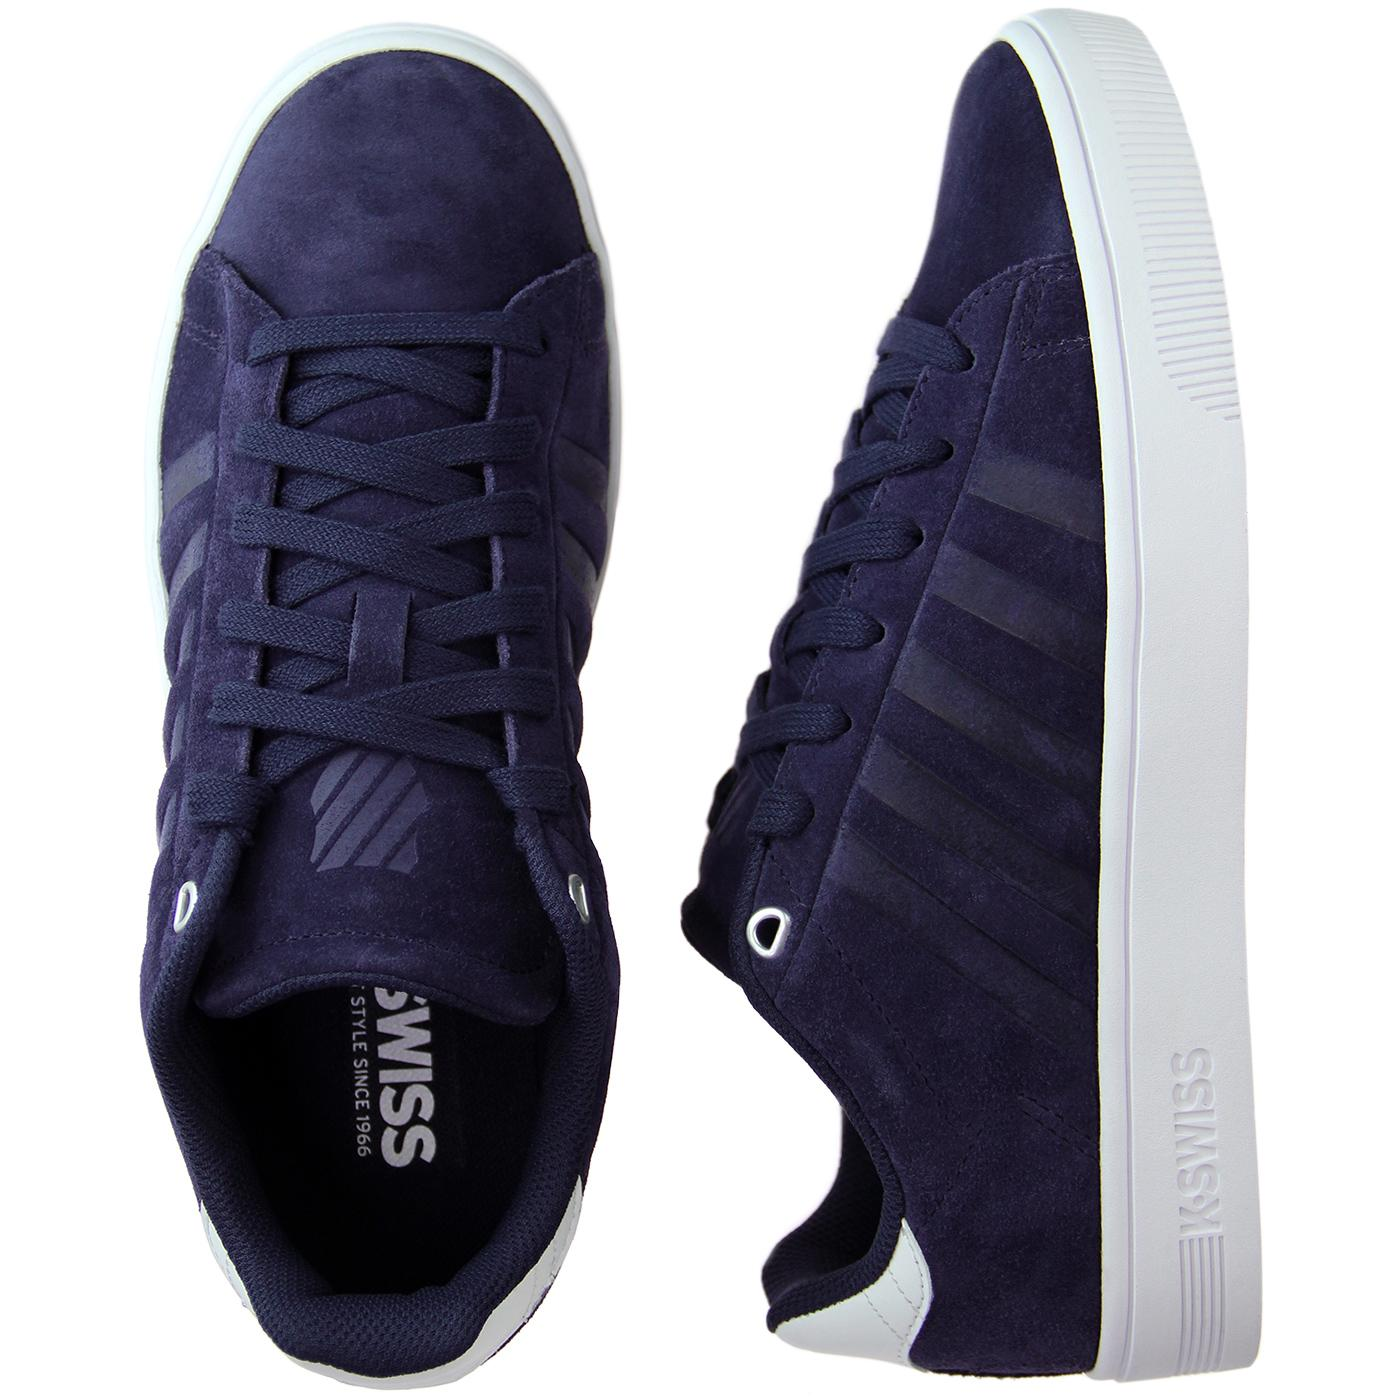 Retro Suede Trainers Navy/White